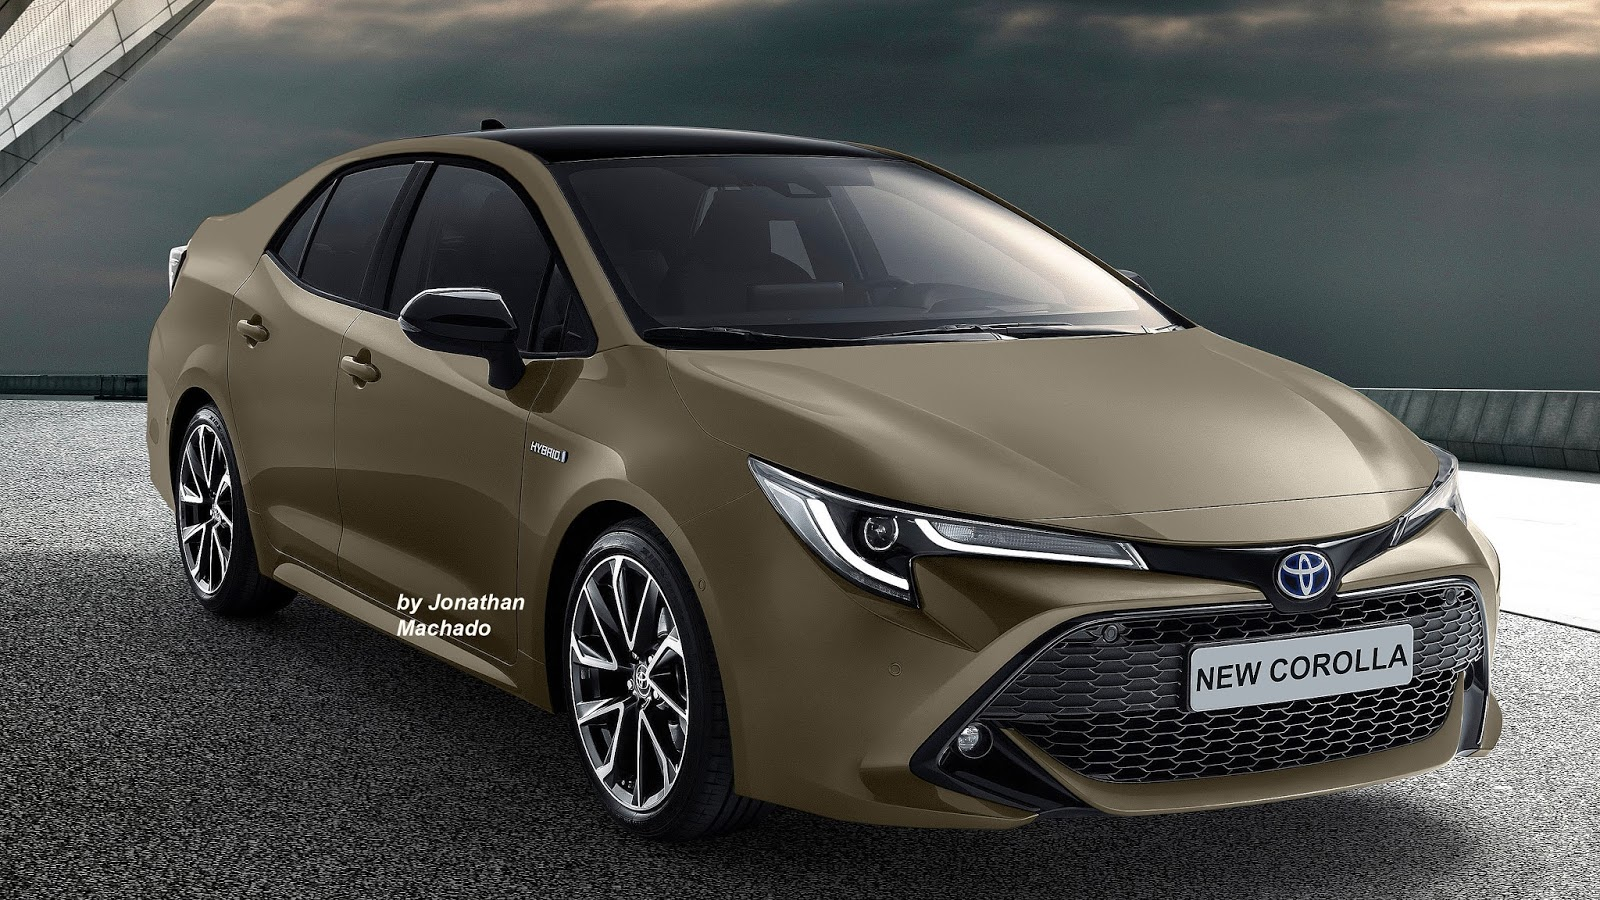 Renderings: Next Generation Toyota Corolla Imagined 3